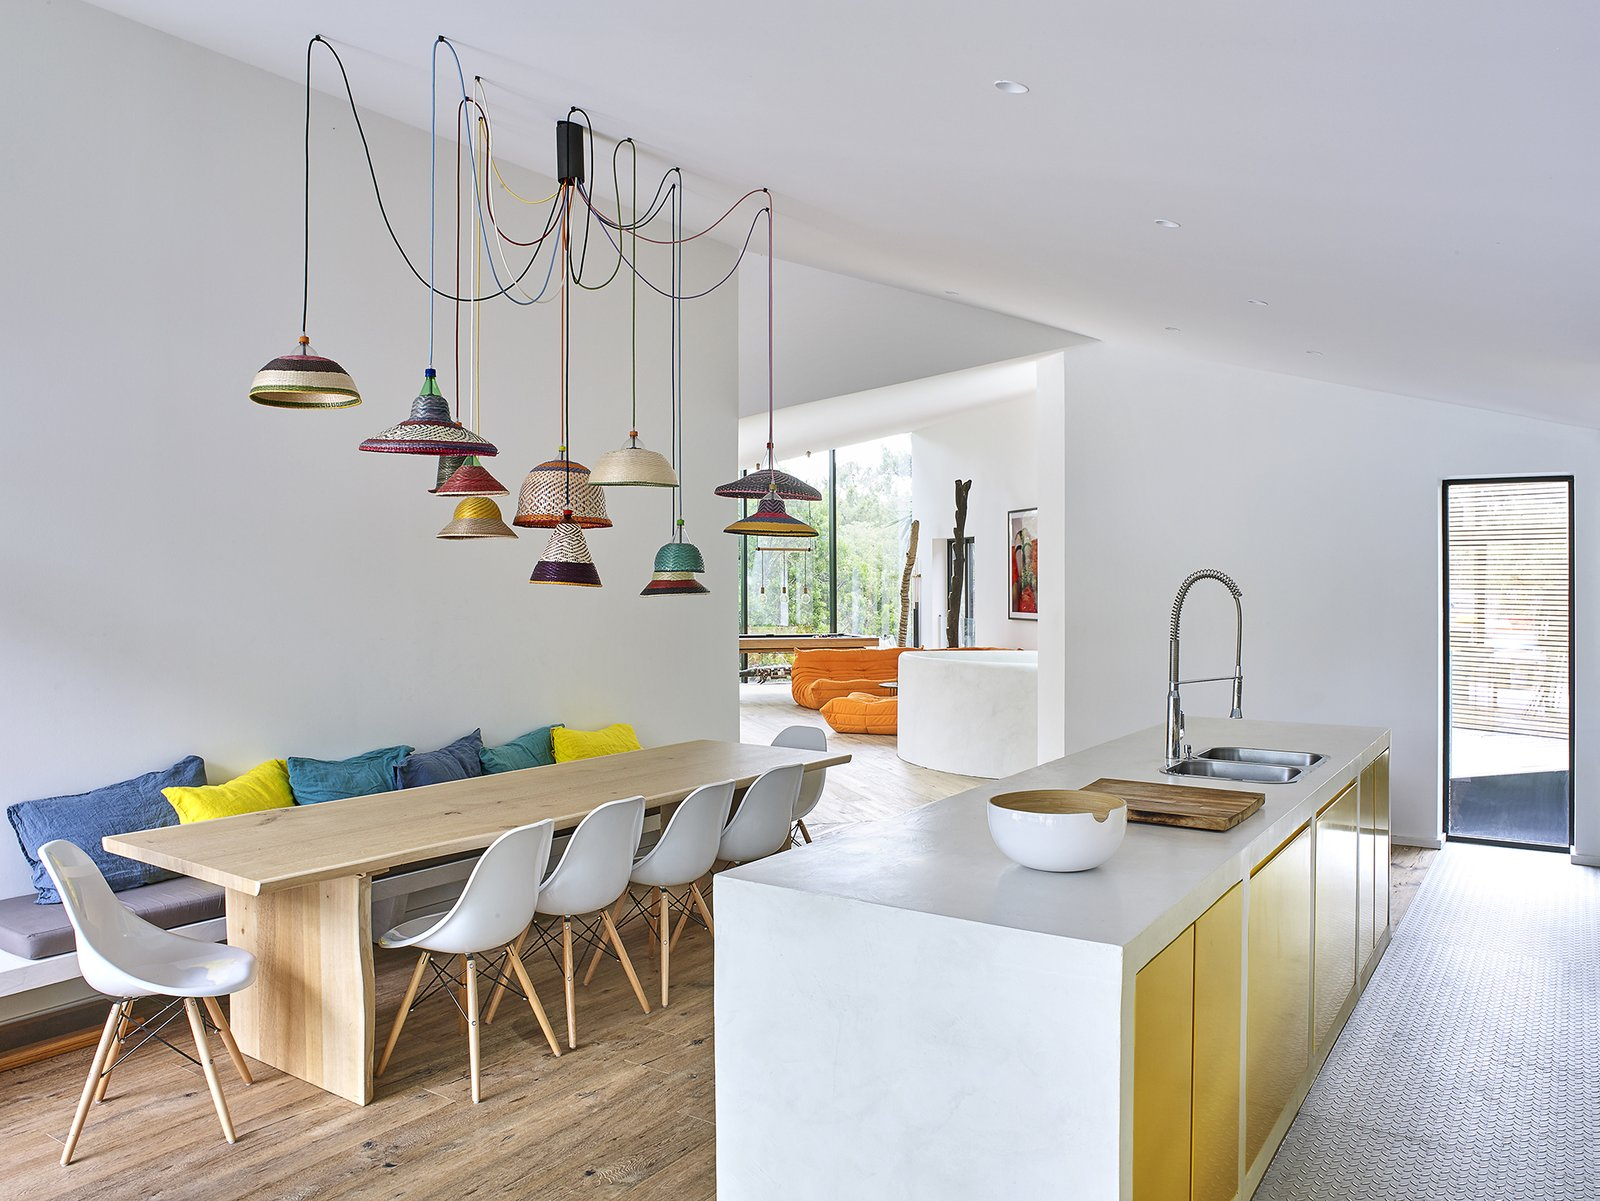 The combined kitchen and dining area is infilled with pops of color.  Metallic gold cabinets and decorative pendants by Alvaro Catalan de Ocon accent the open space.